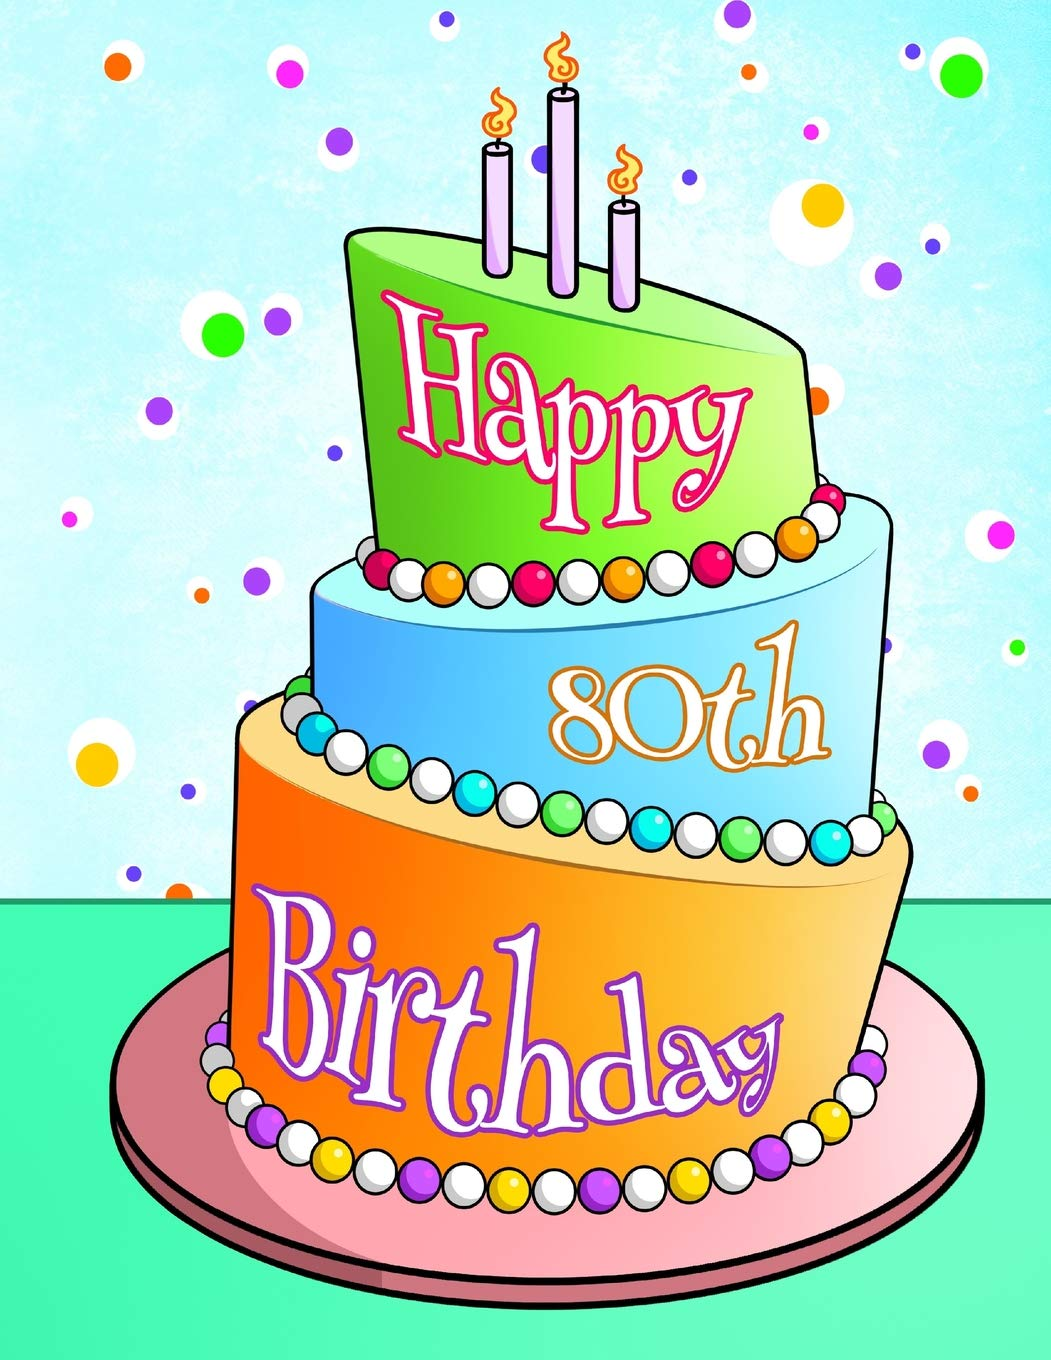 """Happy 80th Birthday: Journal, Notebook, Diary, 105 Lined Pages, Birthday Gifts for 80 Year Old Men and Women, Mom, Dad, Grandma, Grandpa, Sister, Brother, Friend, 8 1/2"""" x 11"""" PDF"""